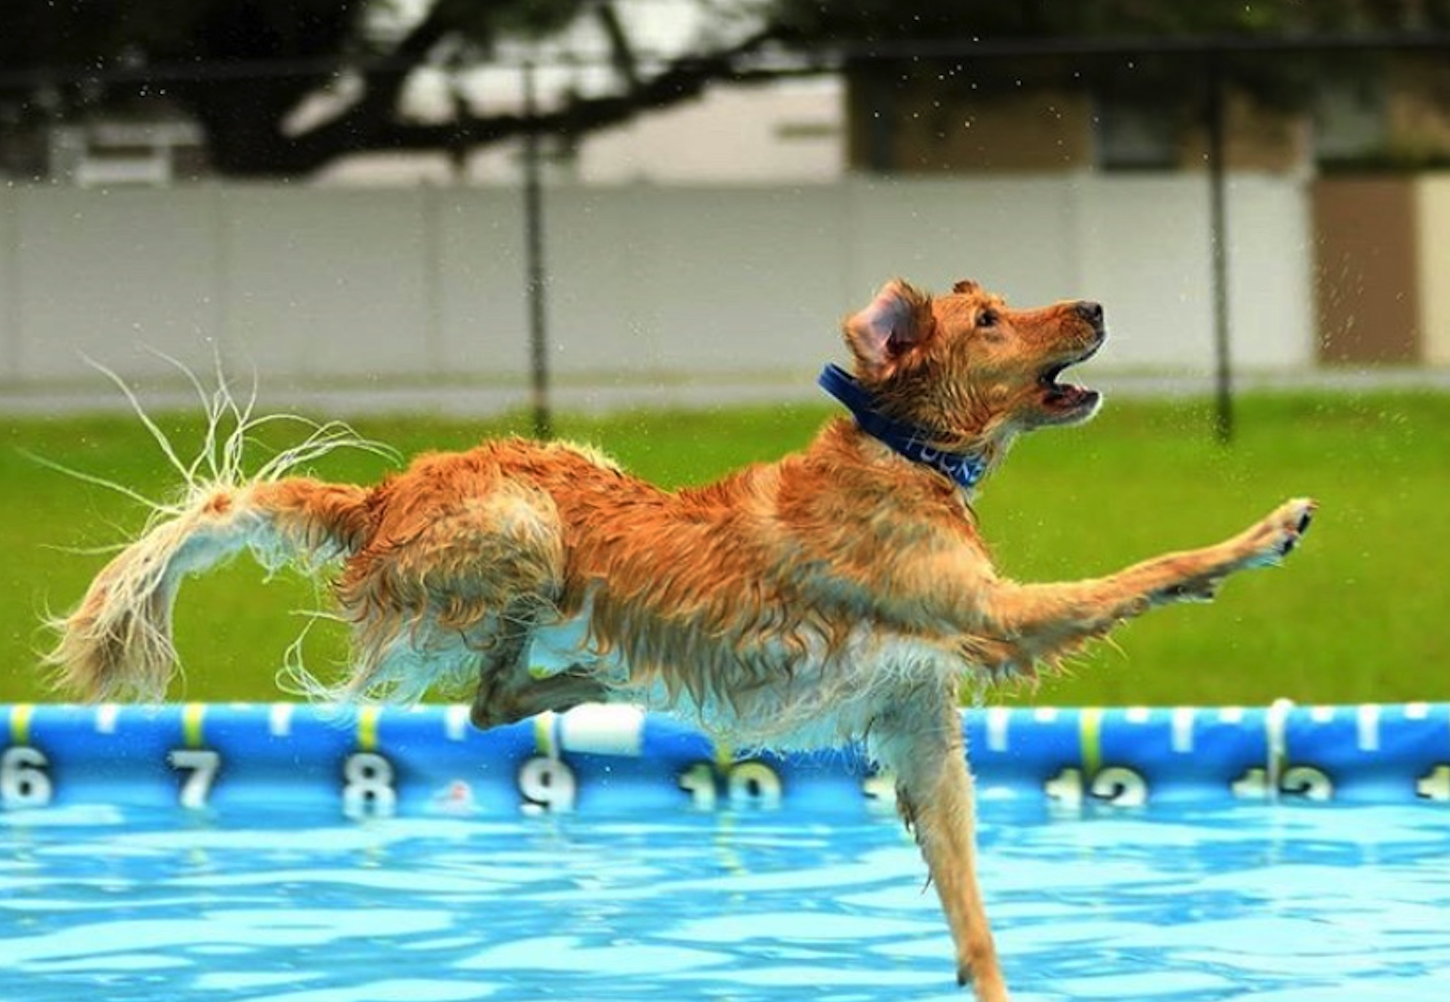 How Can I Get My Dog Comfortable In Water?